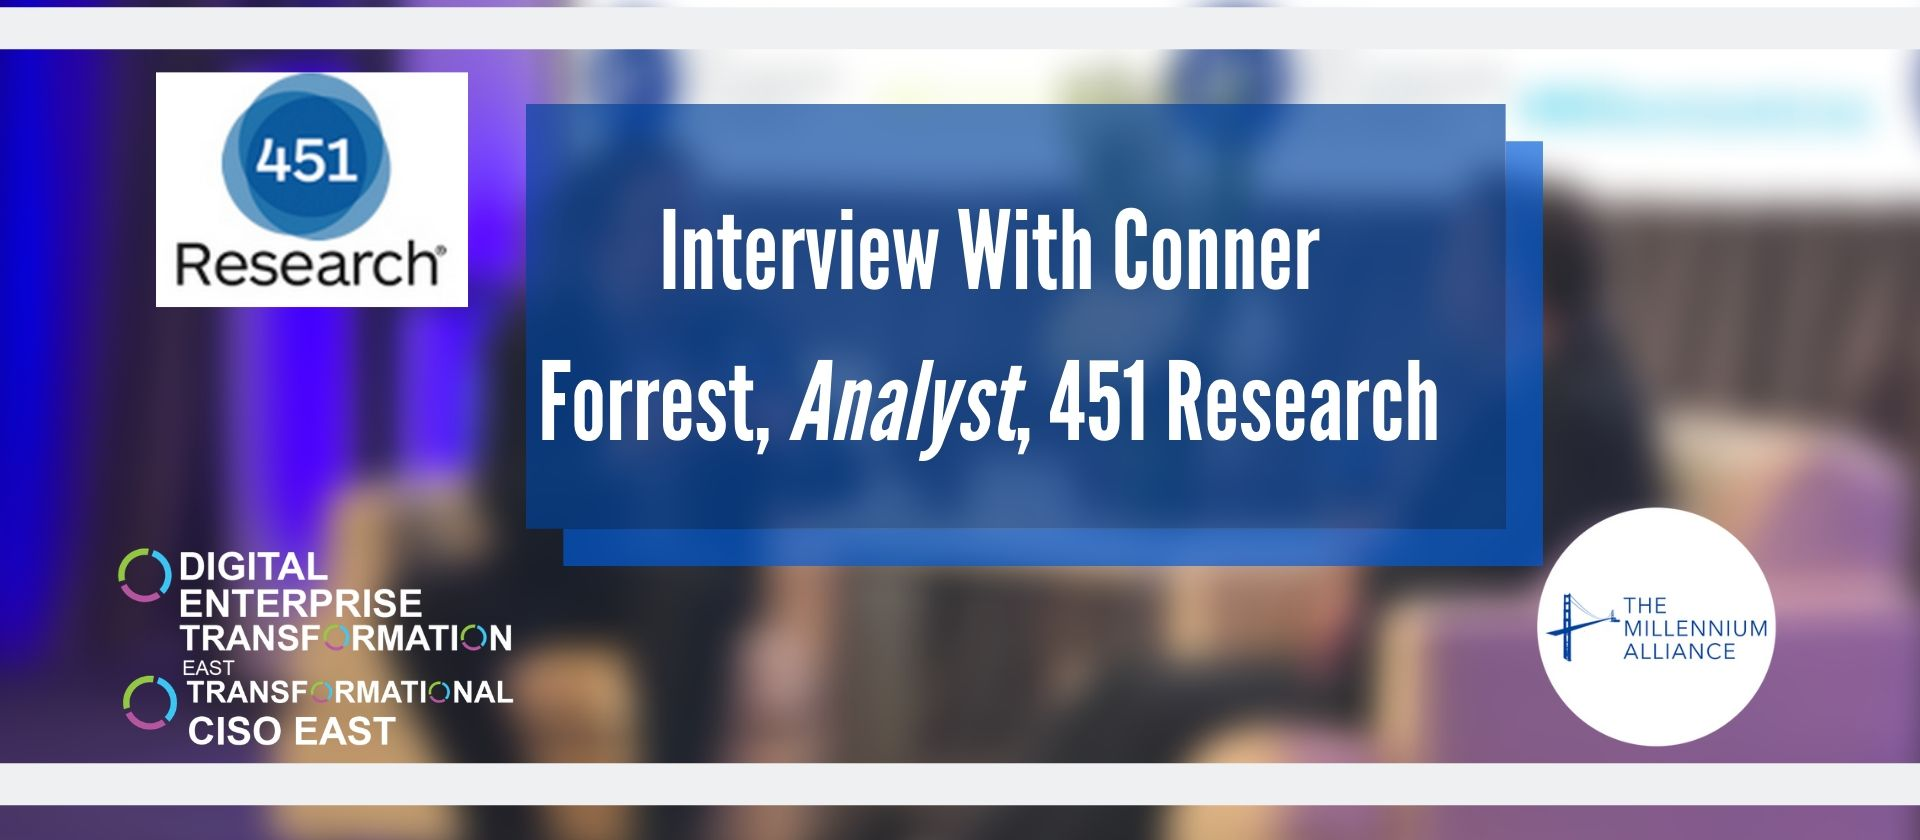 Conner Forrest Interview with the Millenium Alliance